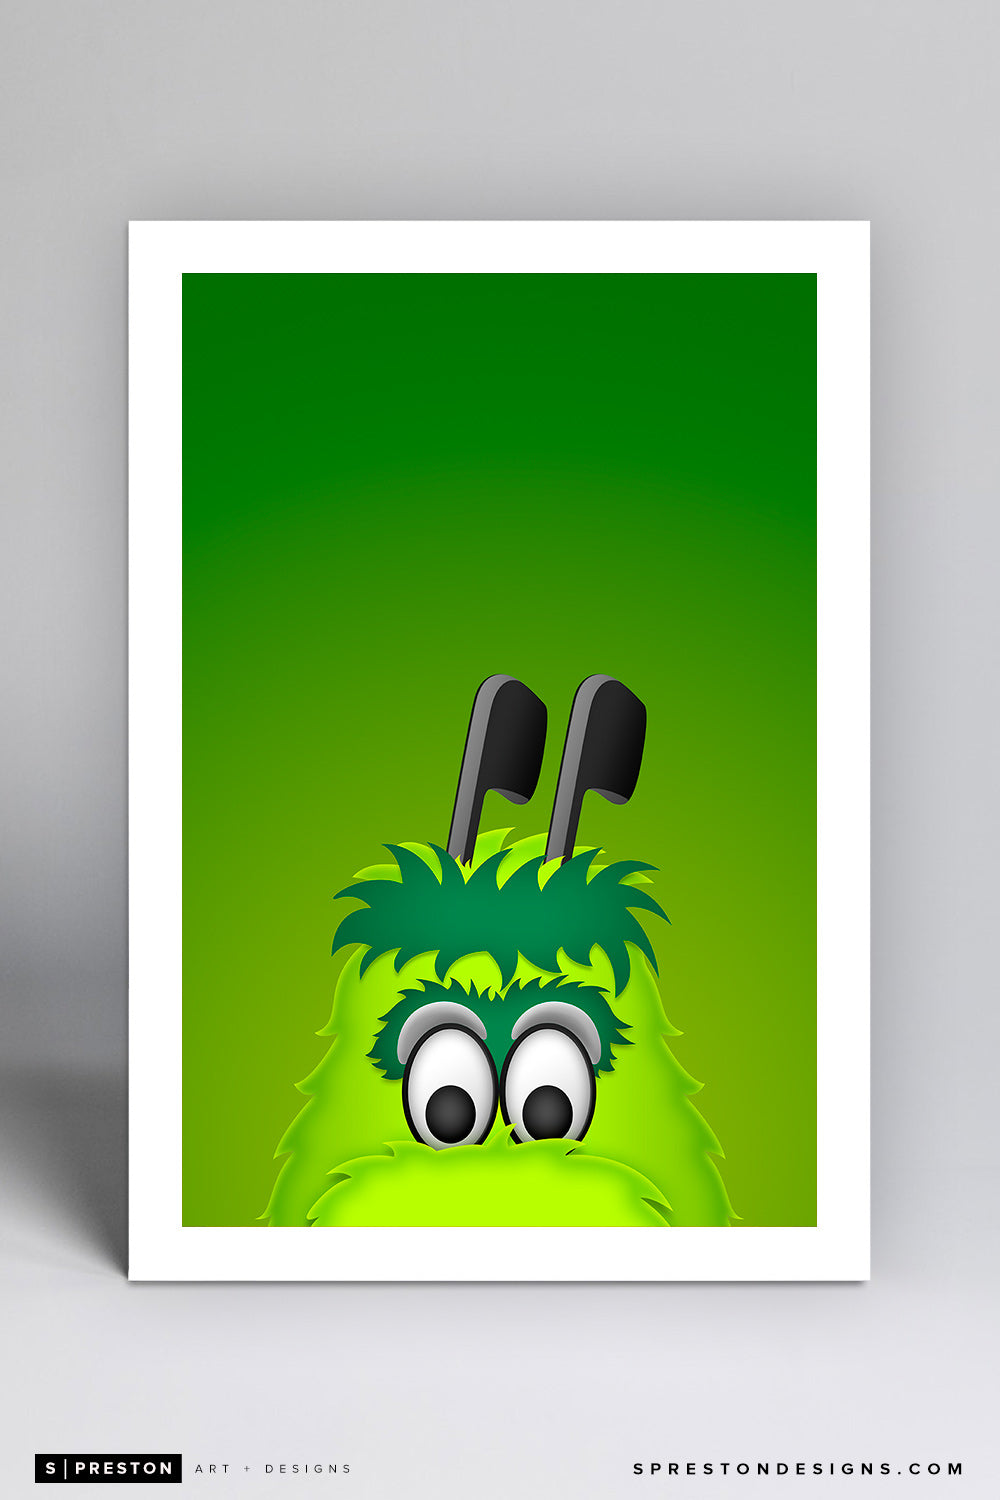 Victor E. Green Art Print - Dallas Stars Mascot - S. Preston Art + Designs